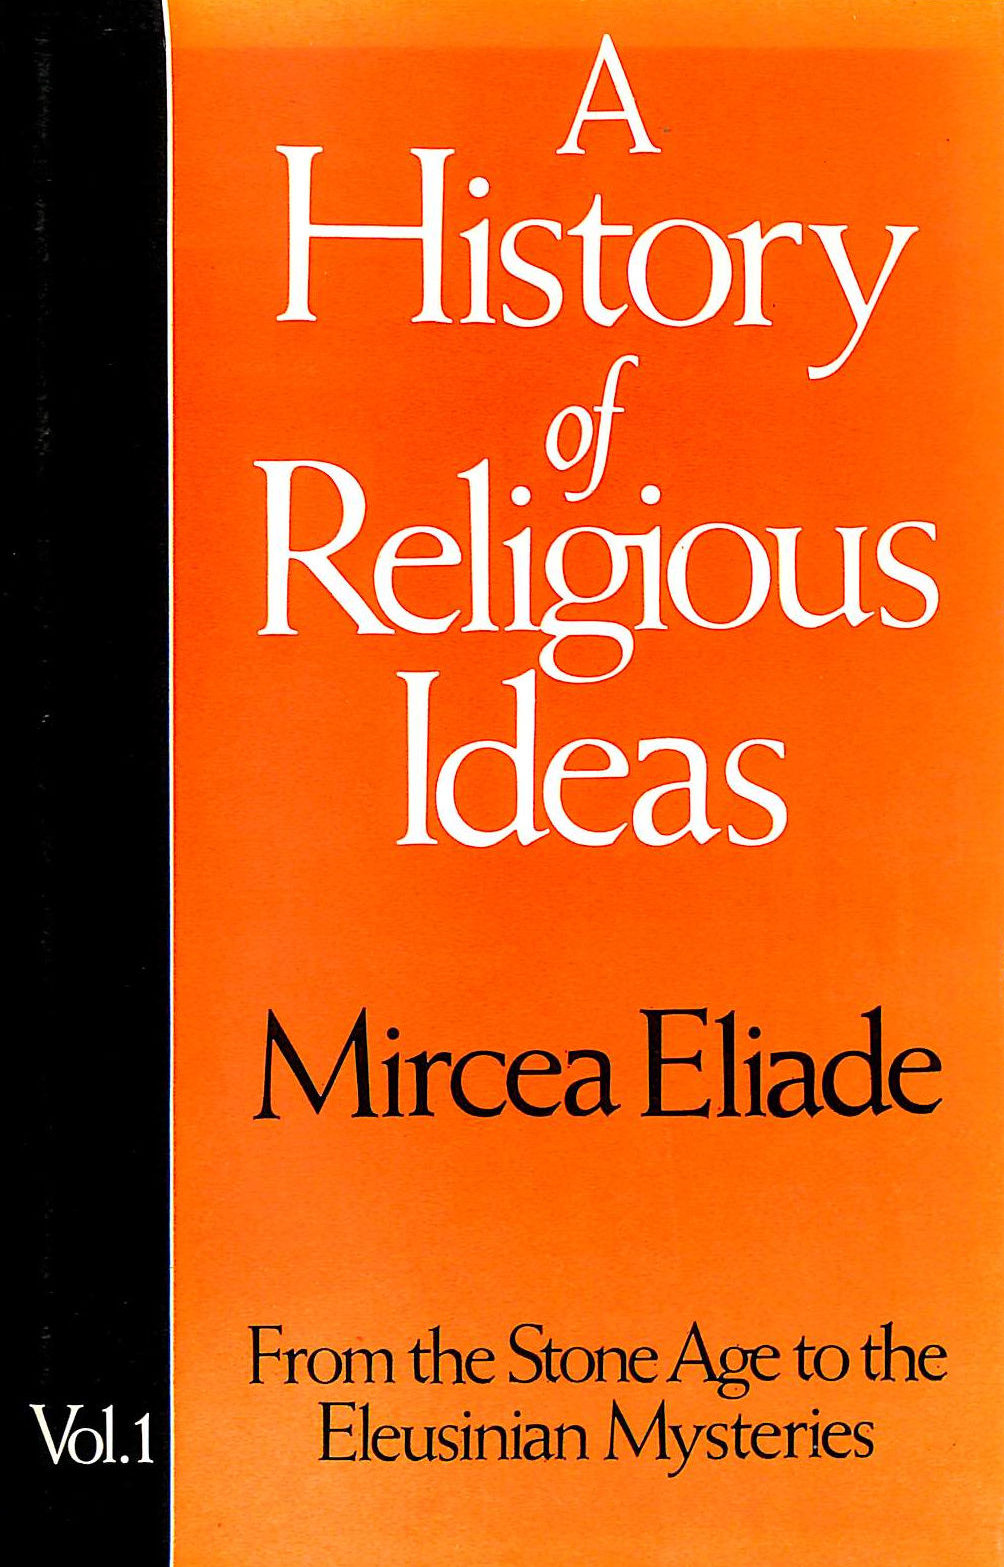 Image for A History Of Religious Ideas : Vol 1 From The Stone Age To The Eleusinian Mysteries